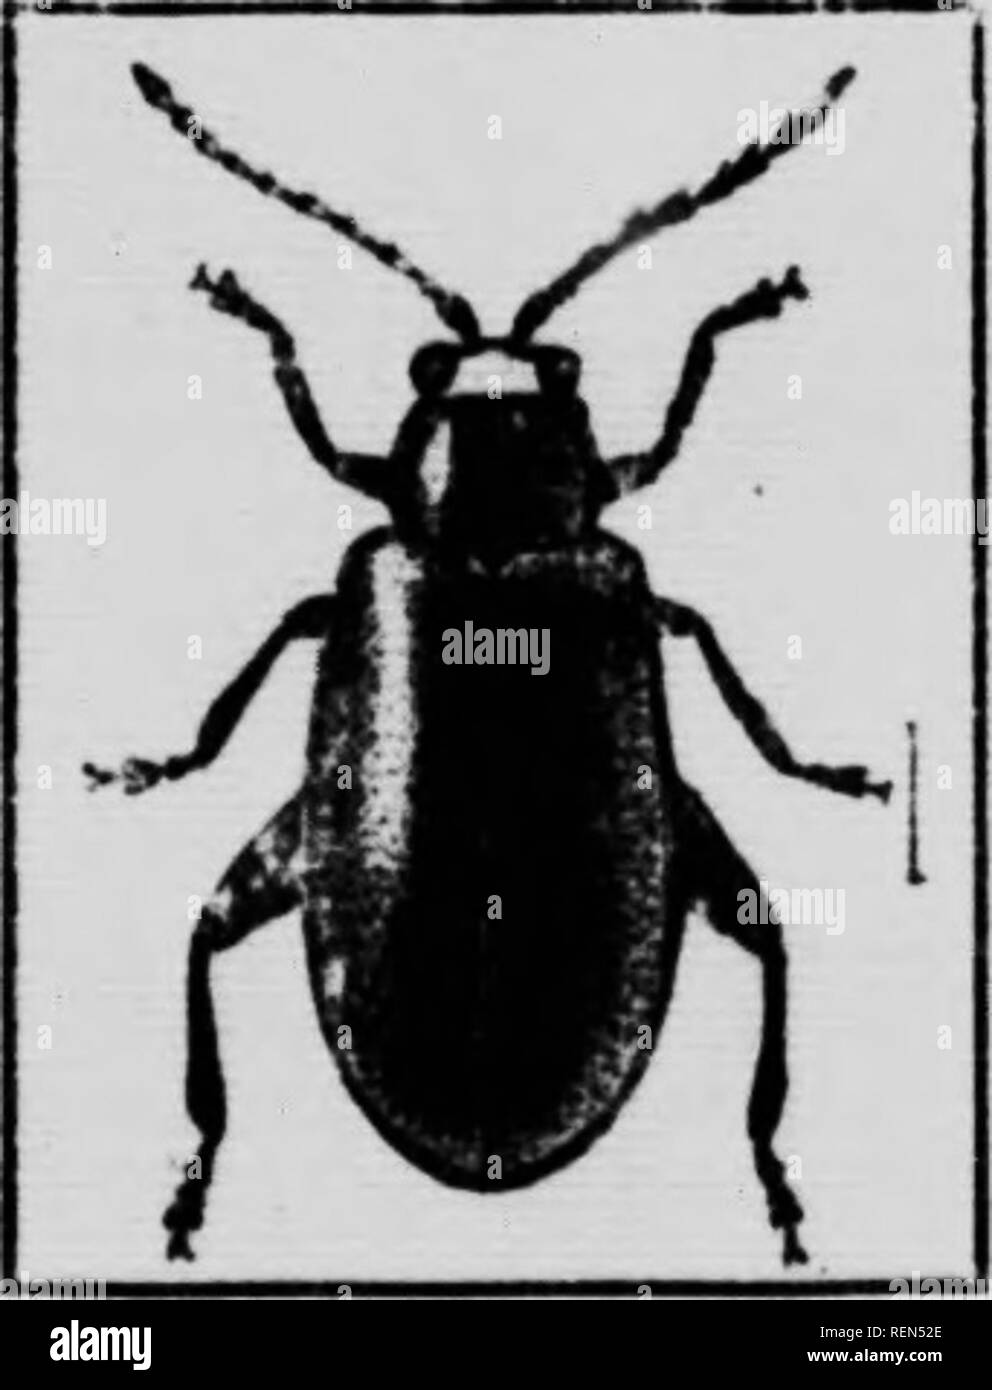 """. Flea-beetles and their control [microform]. Coléoptères, Lutte contre les; Altises, Lutte contre les; Flea beetles; Insectes nuisibles, Lutte contre les; Beetles; Insect pests. Fio. 7.—The lironie Flea-bcetlf, cnlarKcd 4 times; (original).  / -^^JB l^x ^M w )"""" i The Bron7E Flea-beetle, {HaUica evicta Lee.) This species of HaUica which occurred at Nelson, B.C ant on the leaves of strawberry, in the last week of April; 180 specimens were collected from a single plant. It is a larger flea-beetle than HaUica ignita, being about one- sixth of an inch in length and of a bronze colour. The ou - Stock Image"""